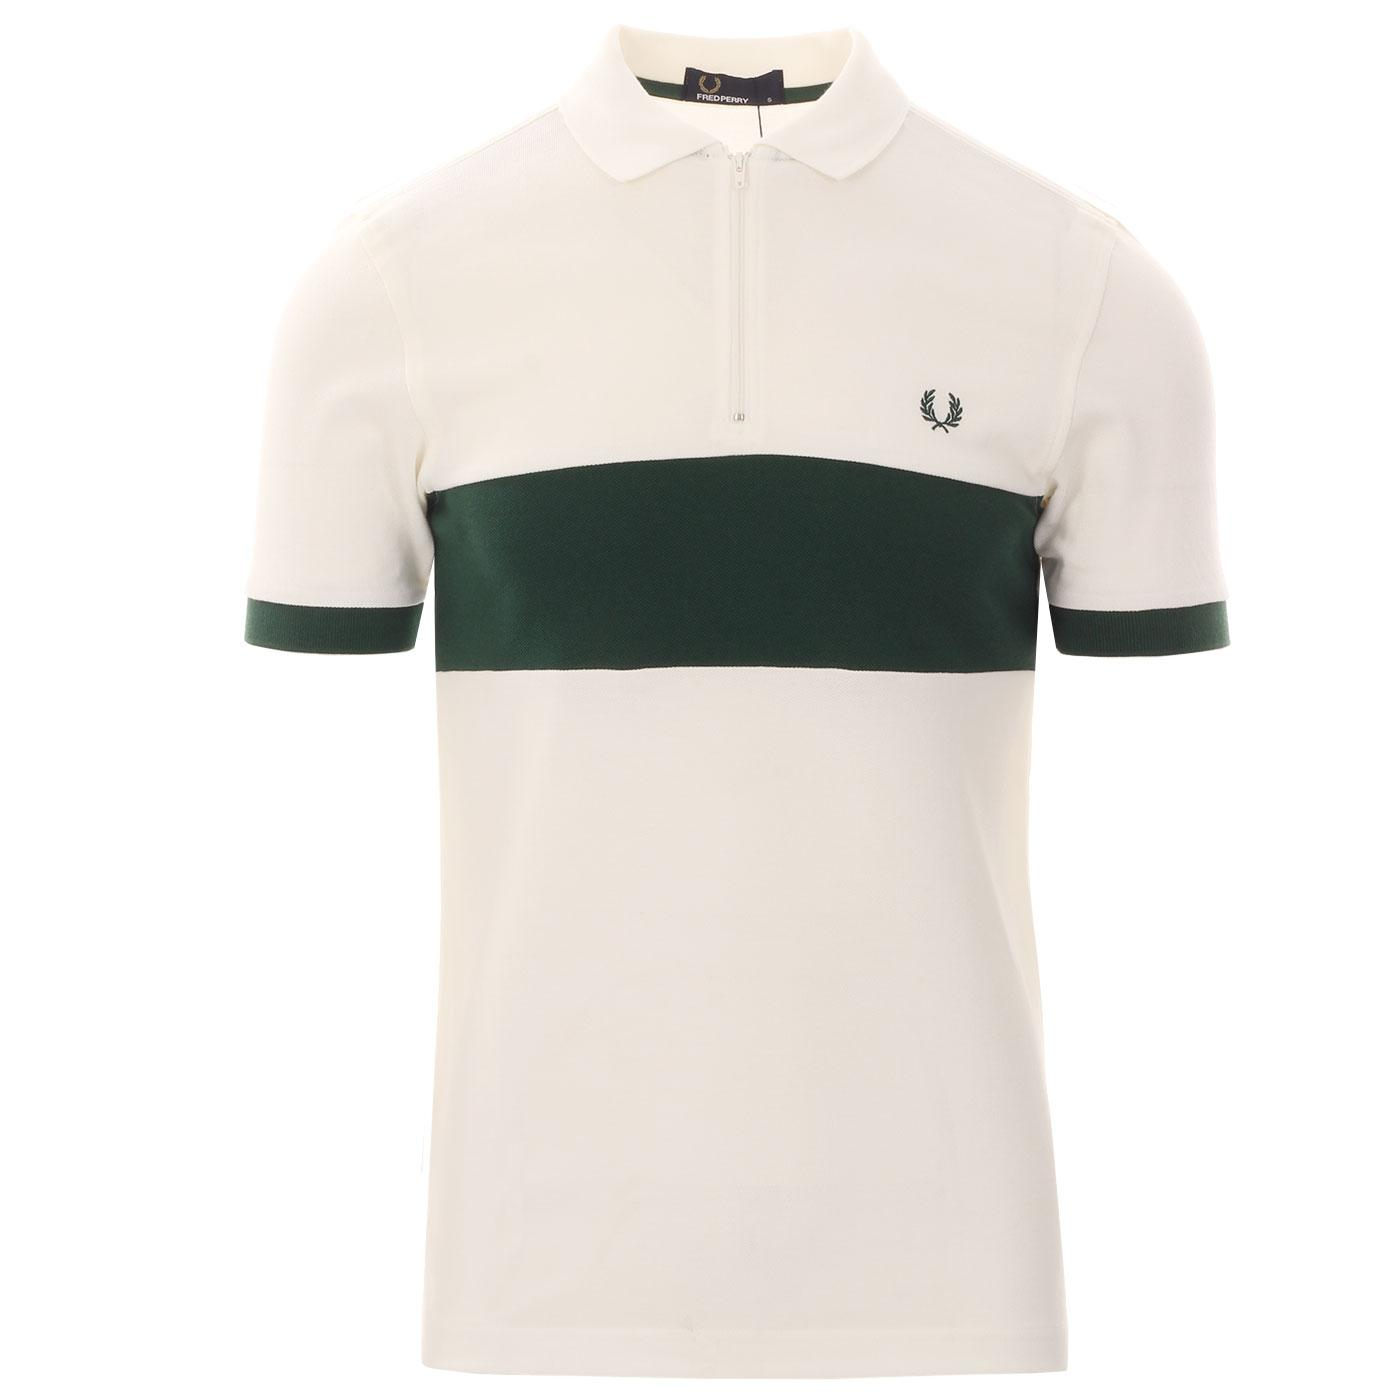 FRED PERRY Chest Panel Zip Neck Pique Polo Shirt